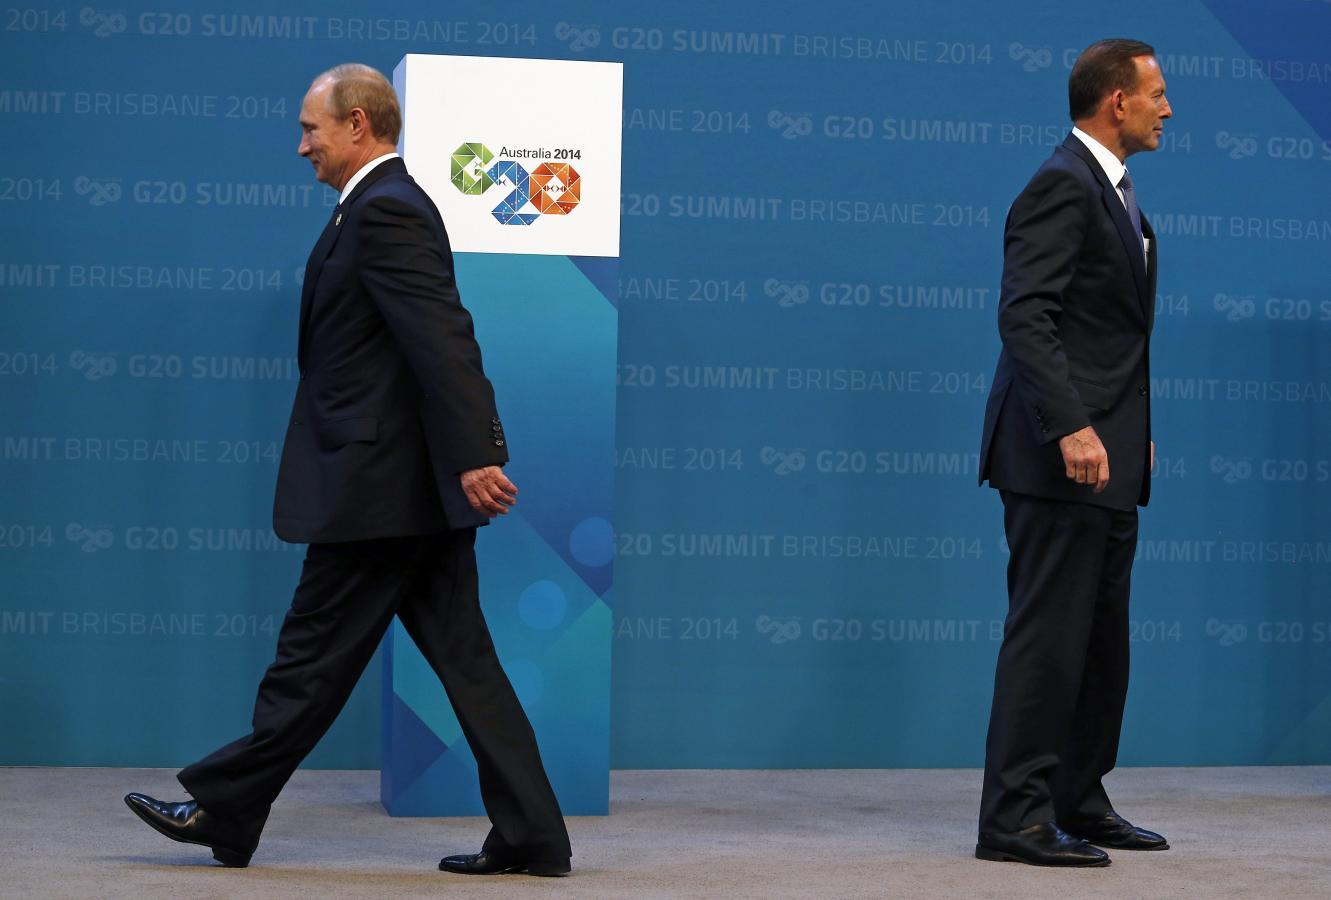 Western leaders confront Putin at G20 with threat of more sanctions